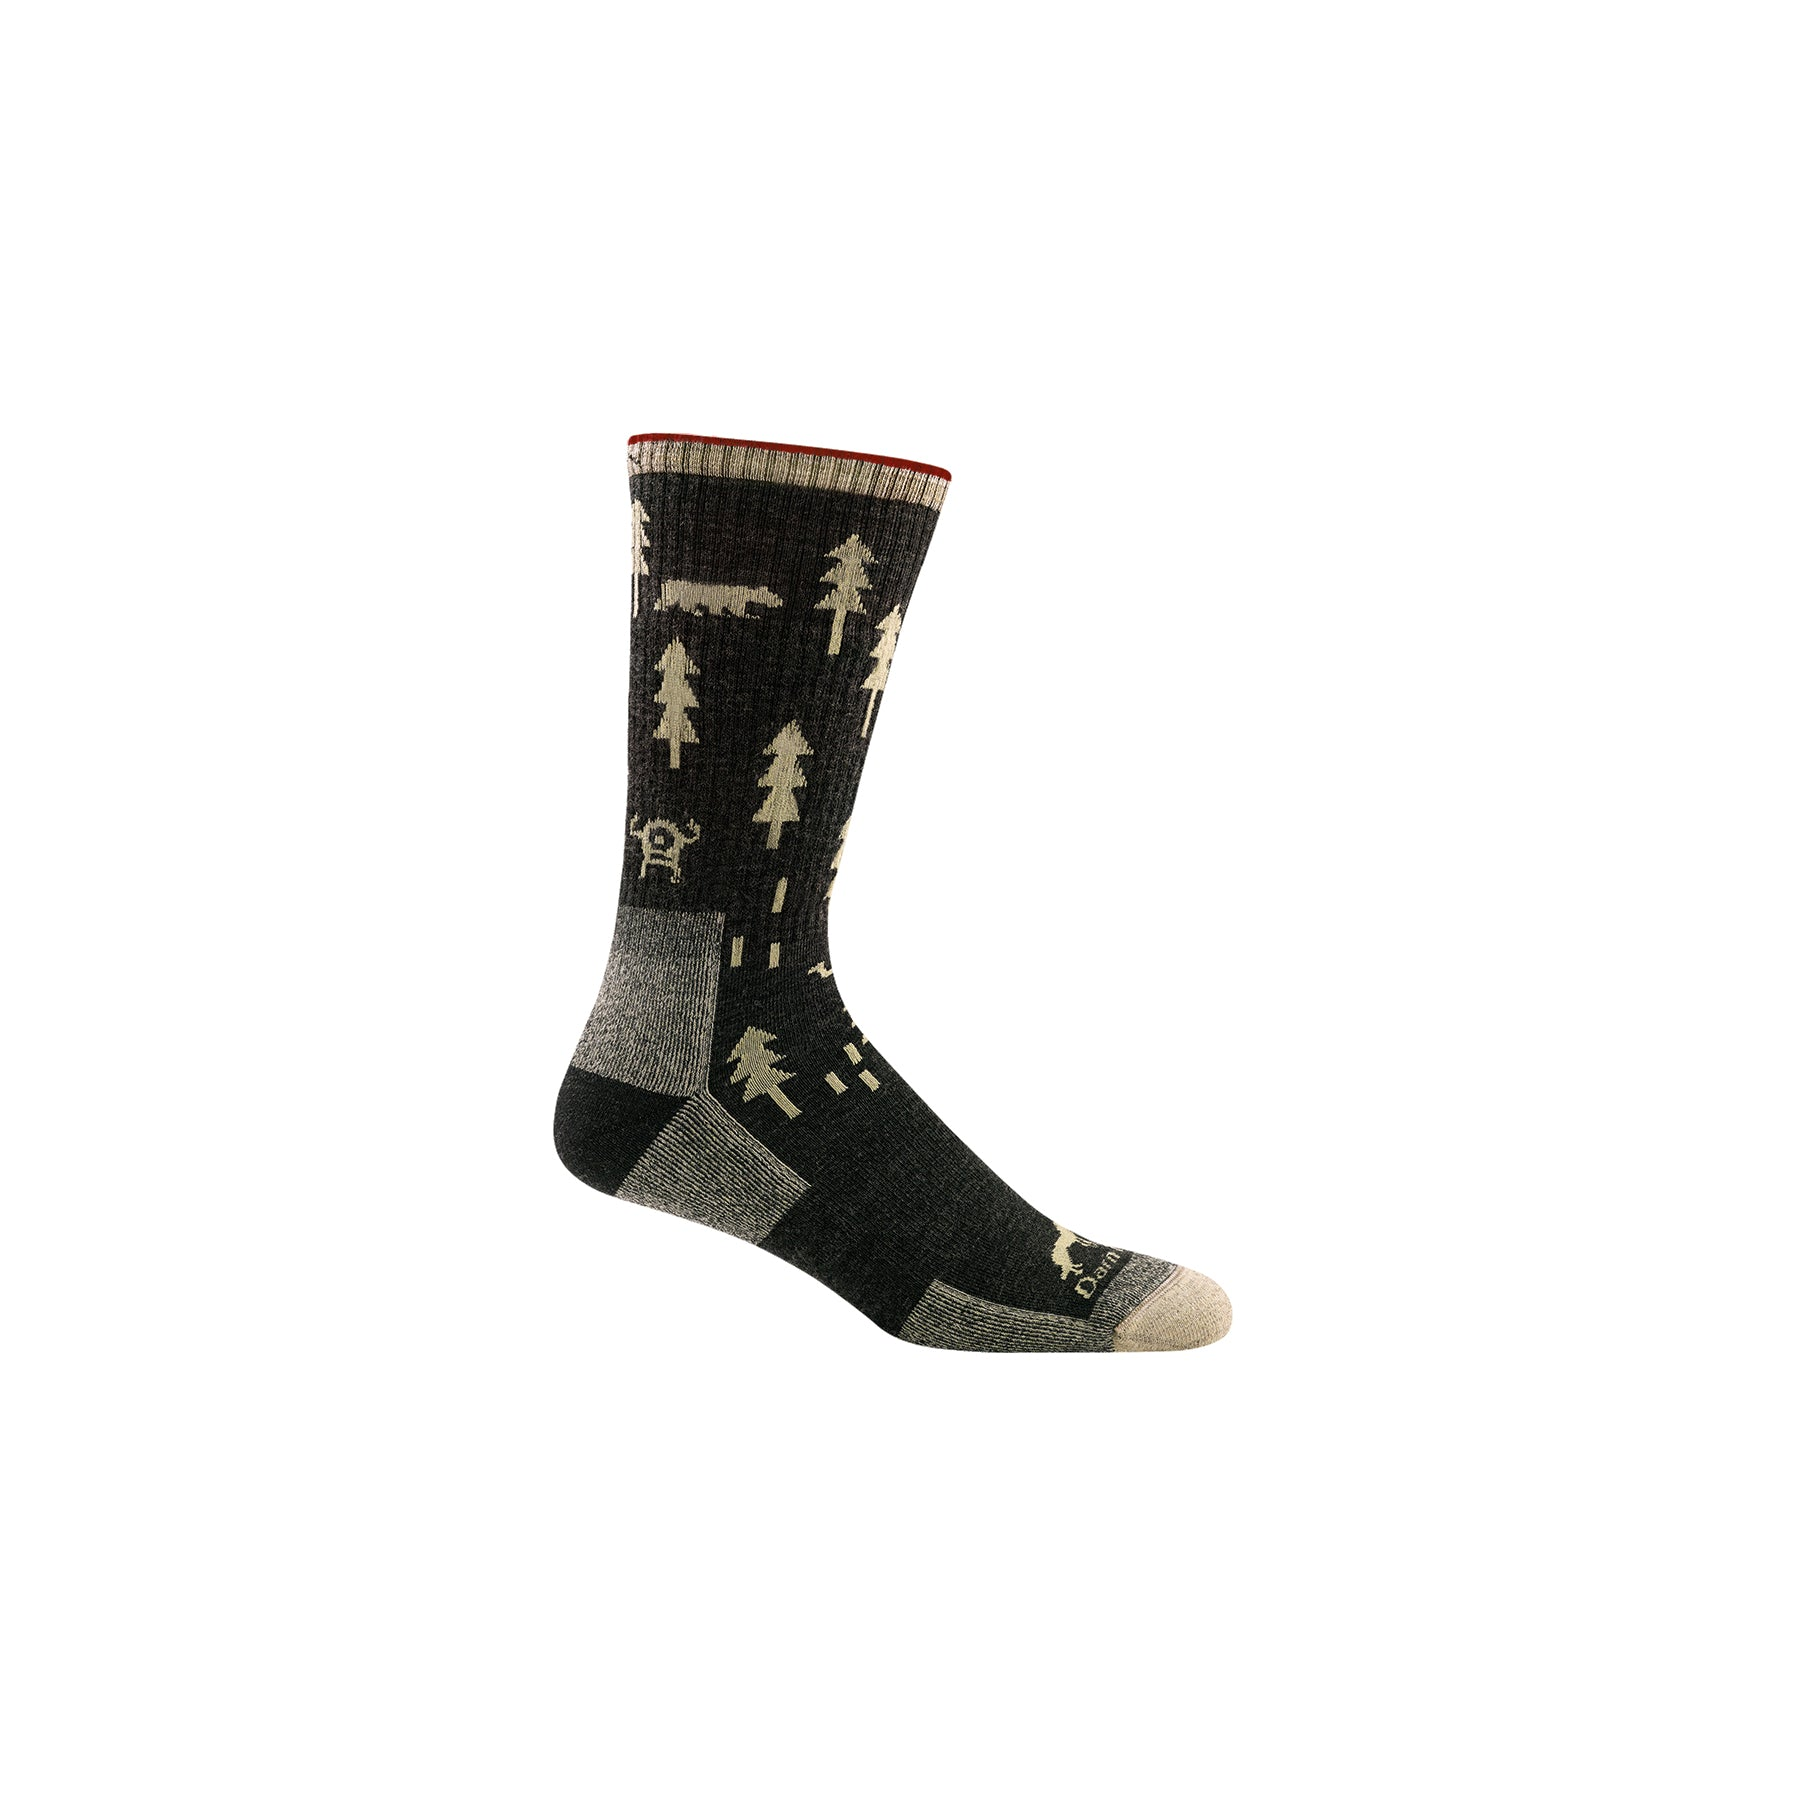 side view of ABC boot sock for men black with tan graphics of aliens, bears and camels